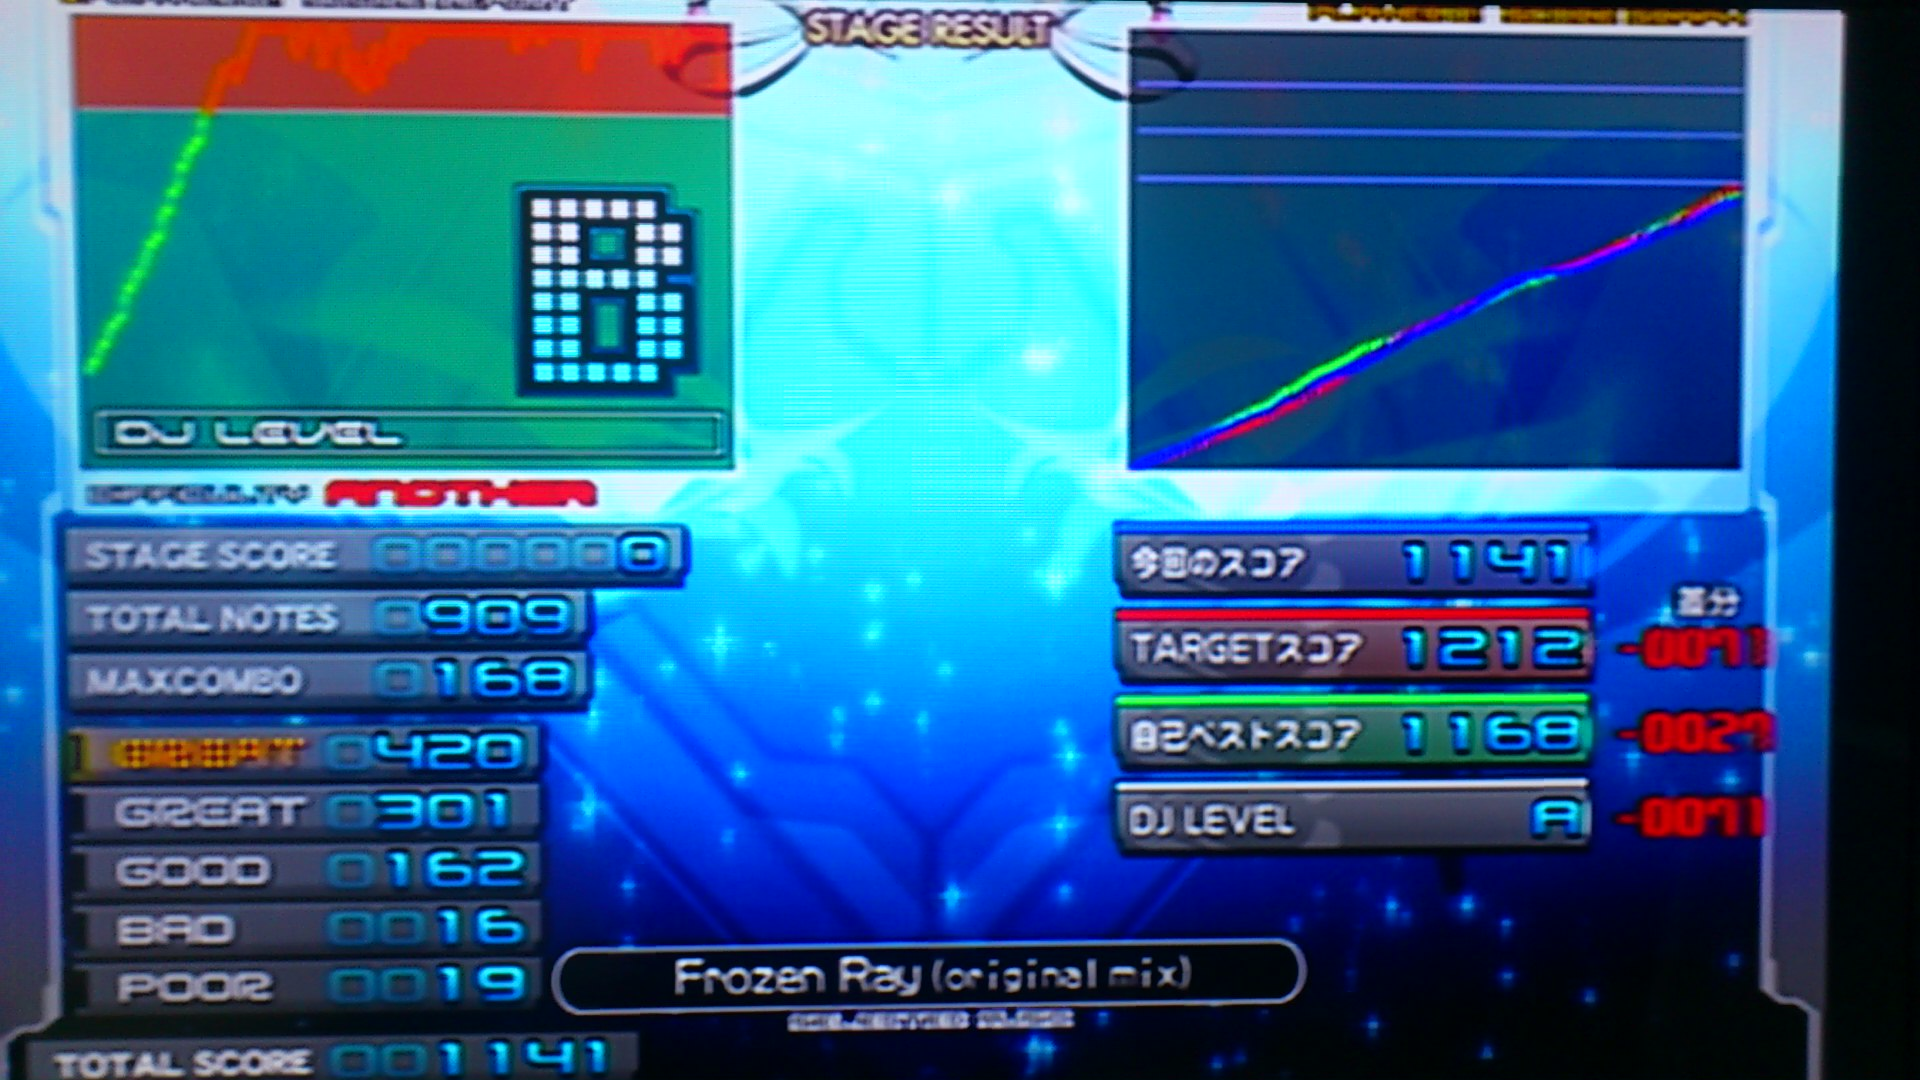 Frozen Ray(A)ノマゲ